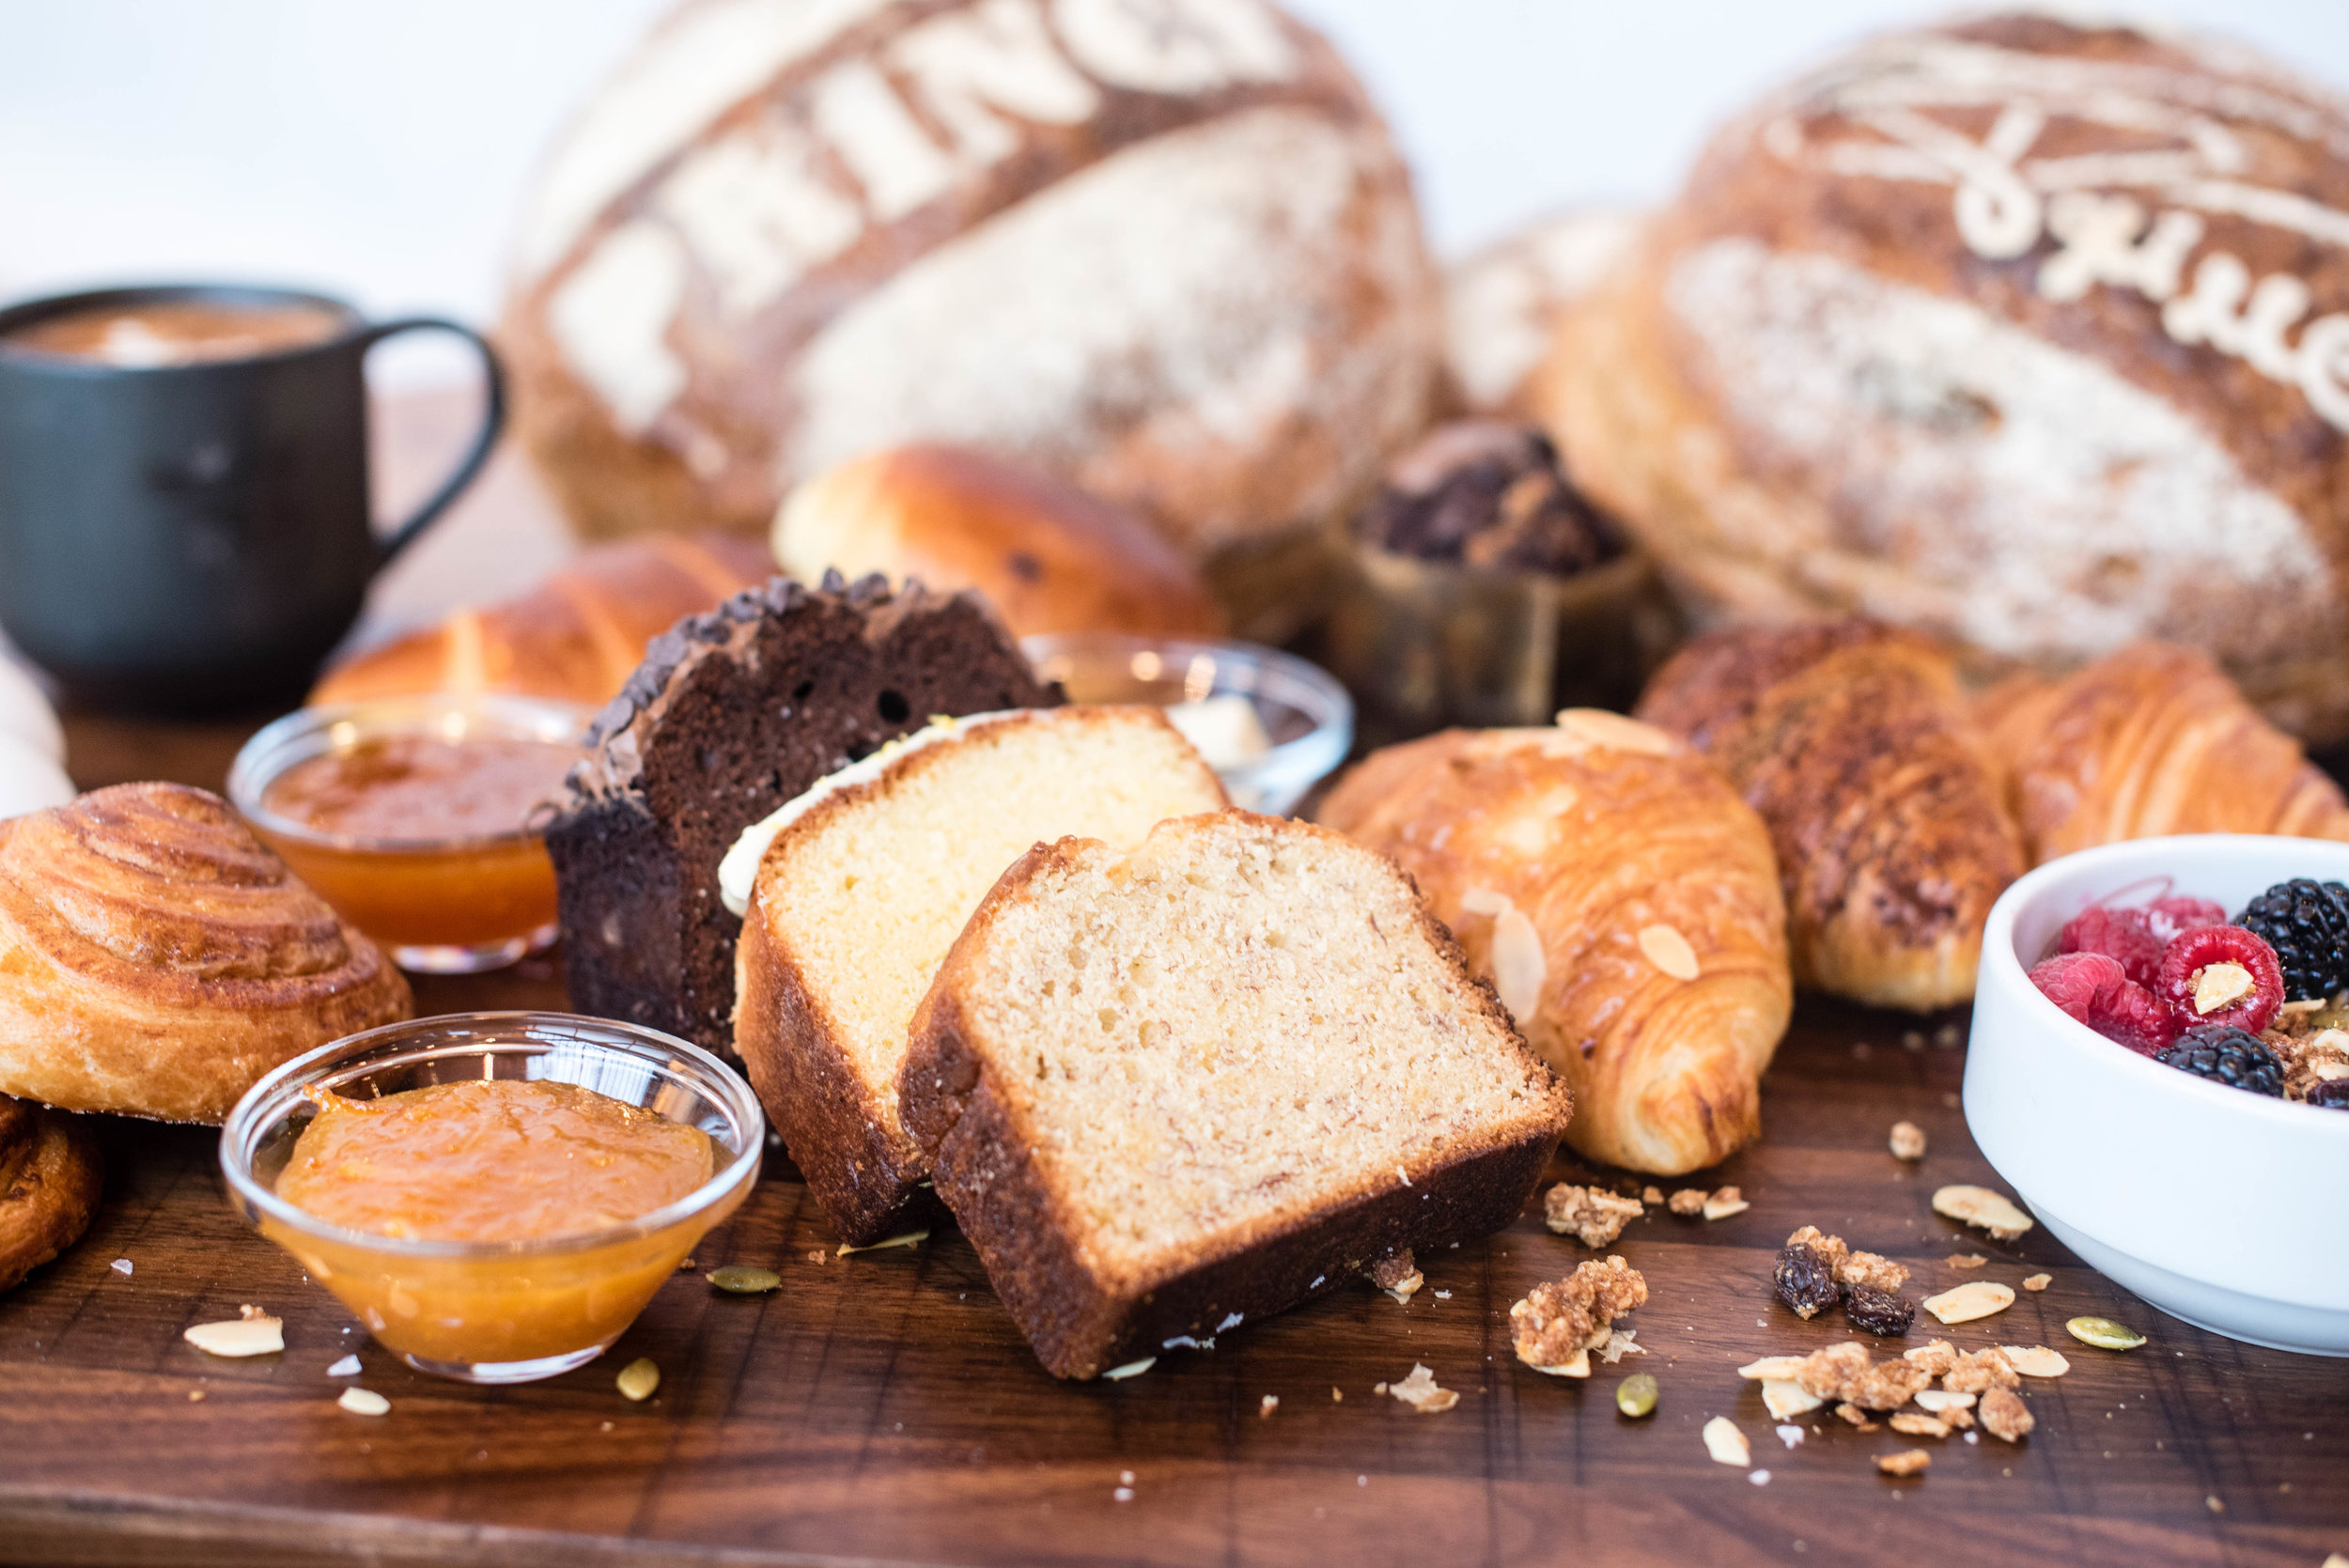 Banana Bread (front and center) surrounded by assortment of pastries